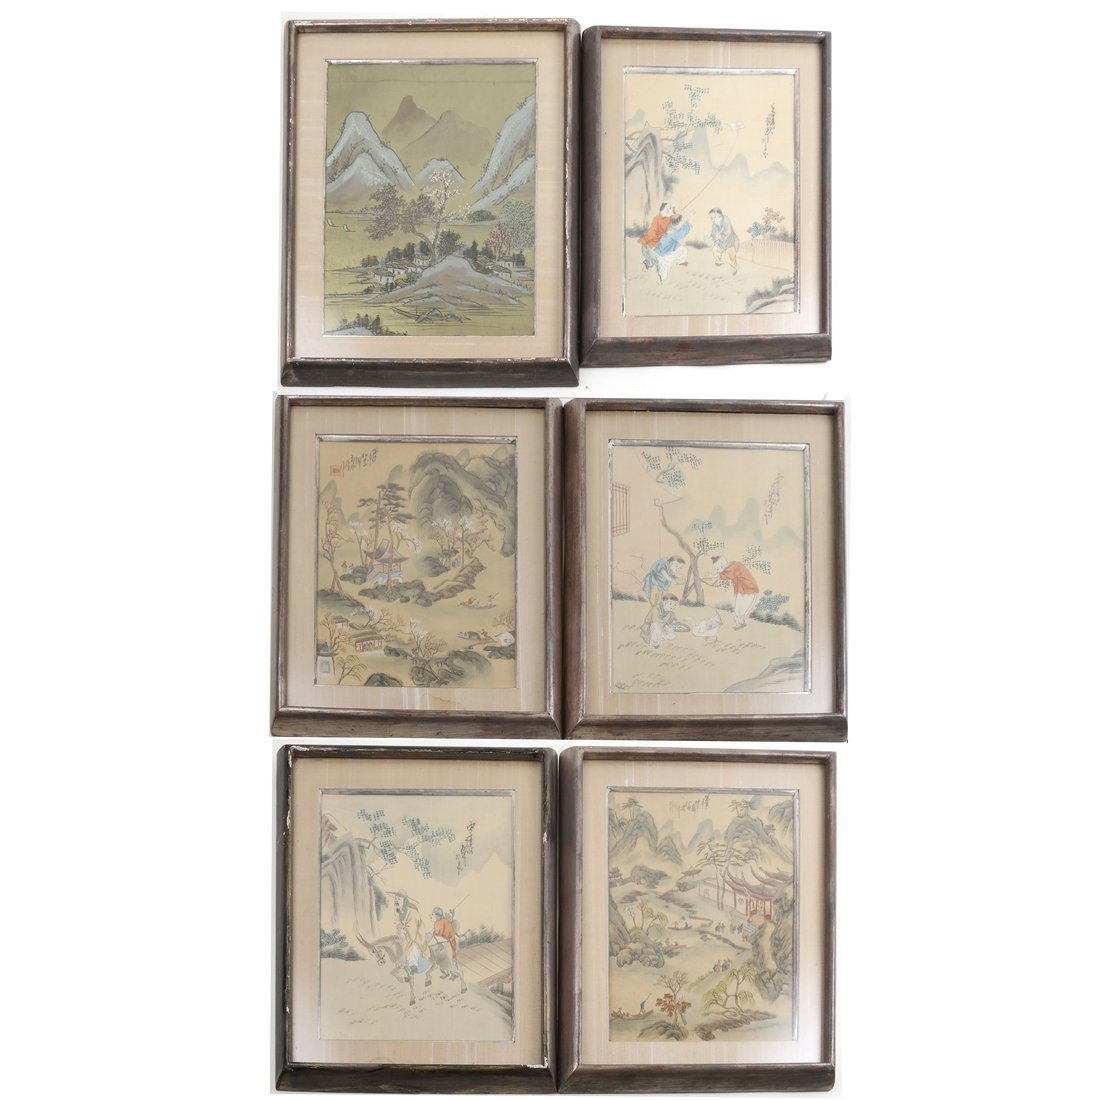 Set of 6 Chinese Colored Prints, Framed